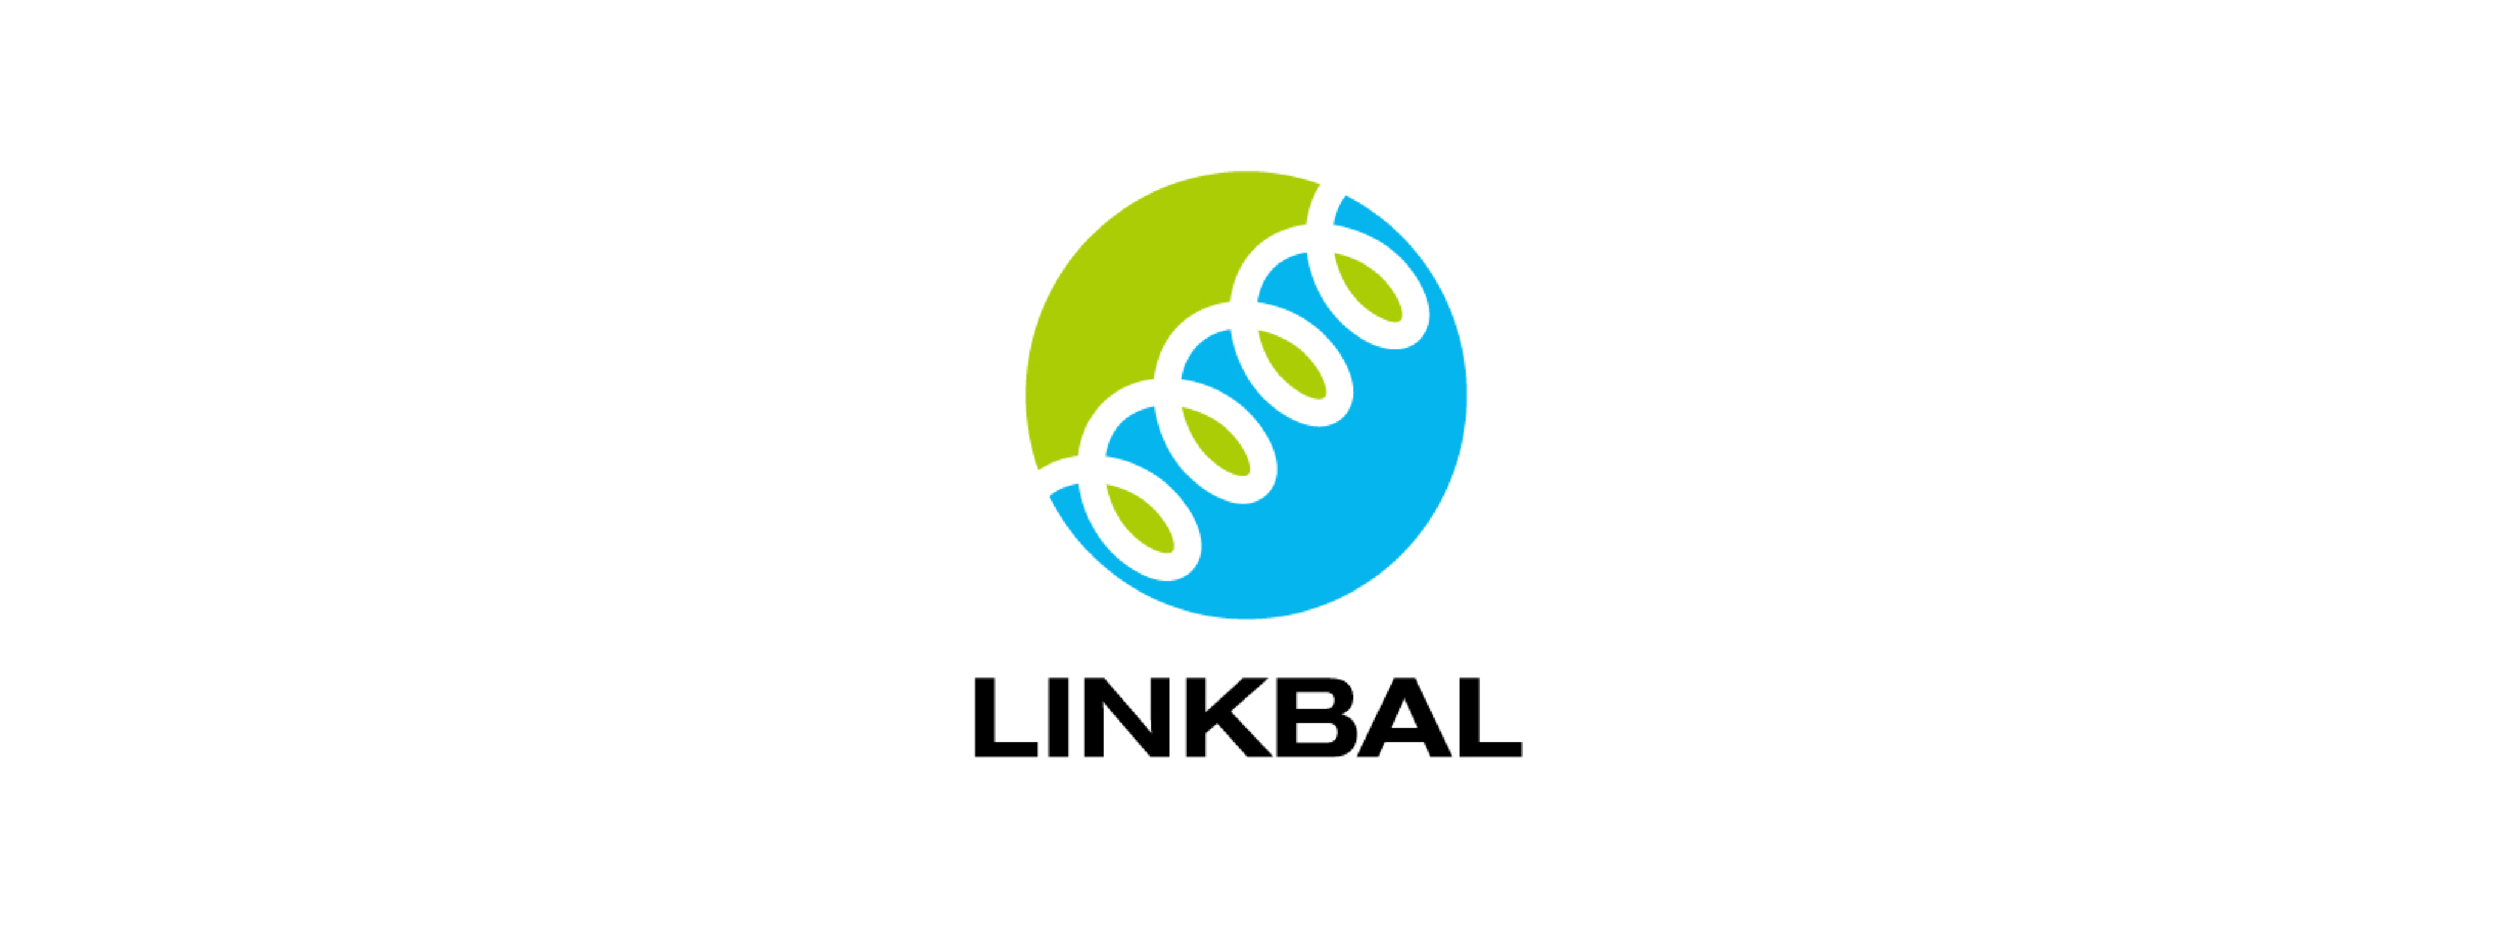 linkbal.png